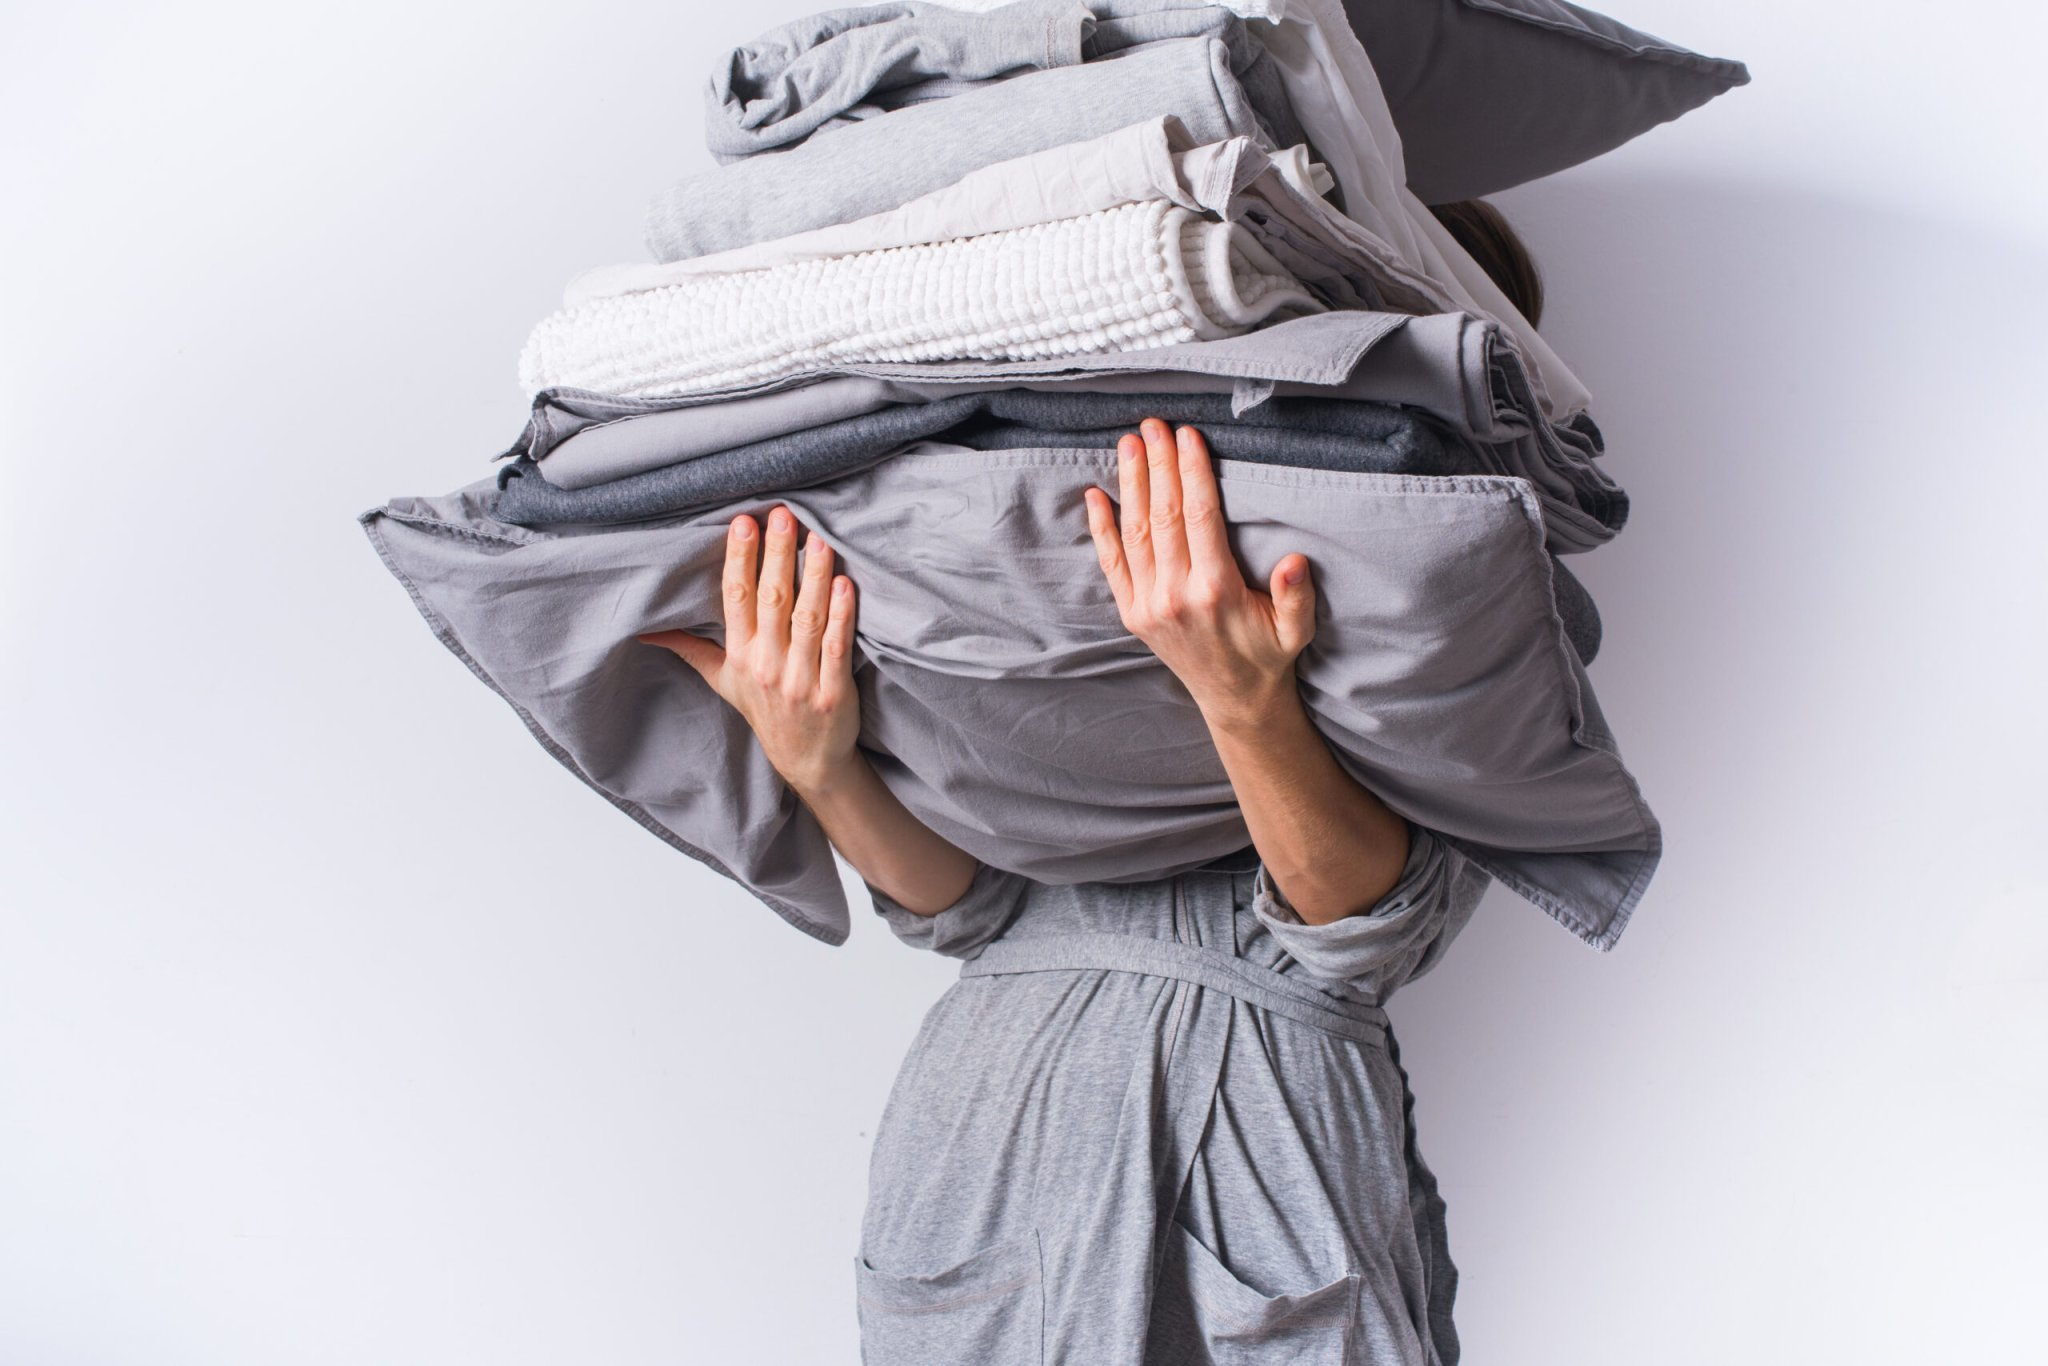 The New Controversial Laundry Hack To Help Fold Clothes